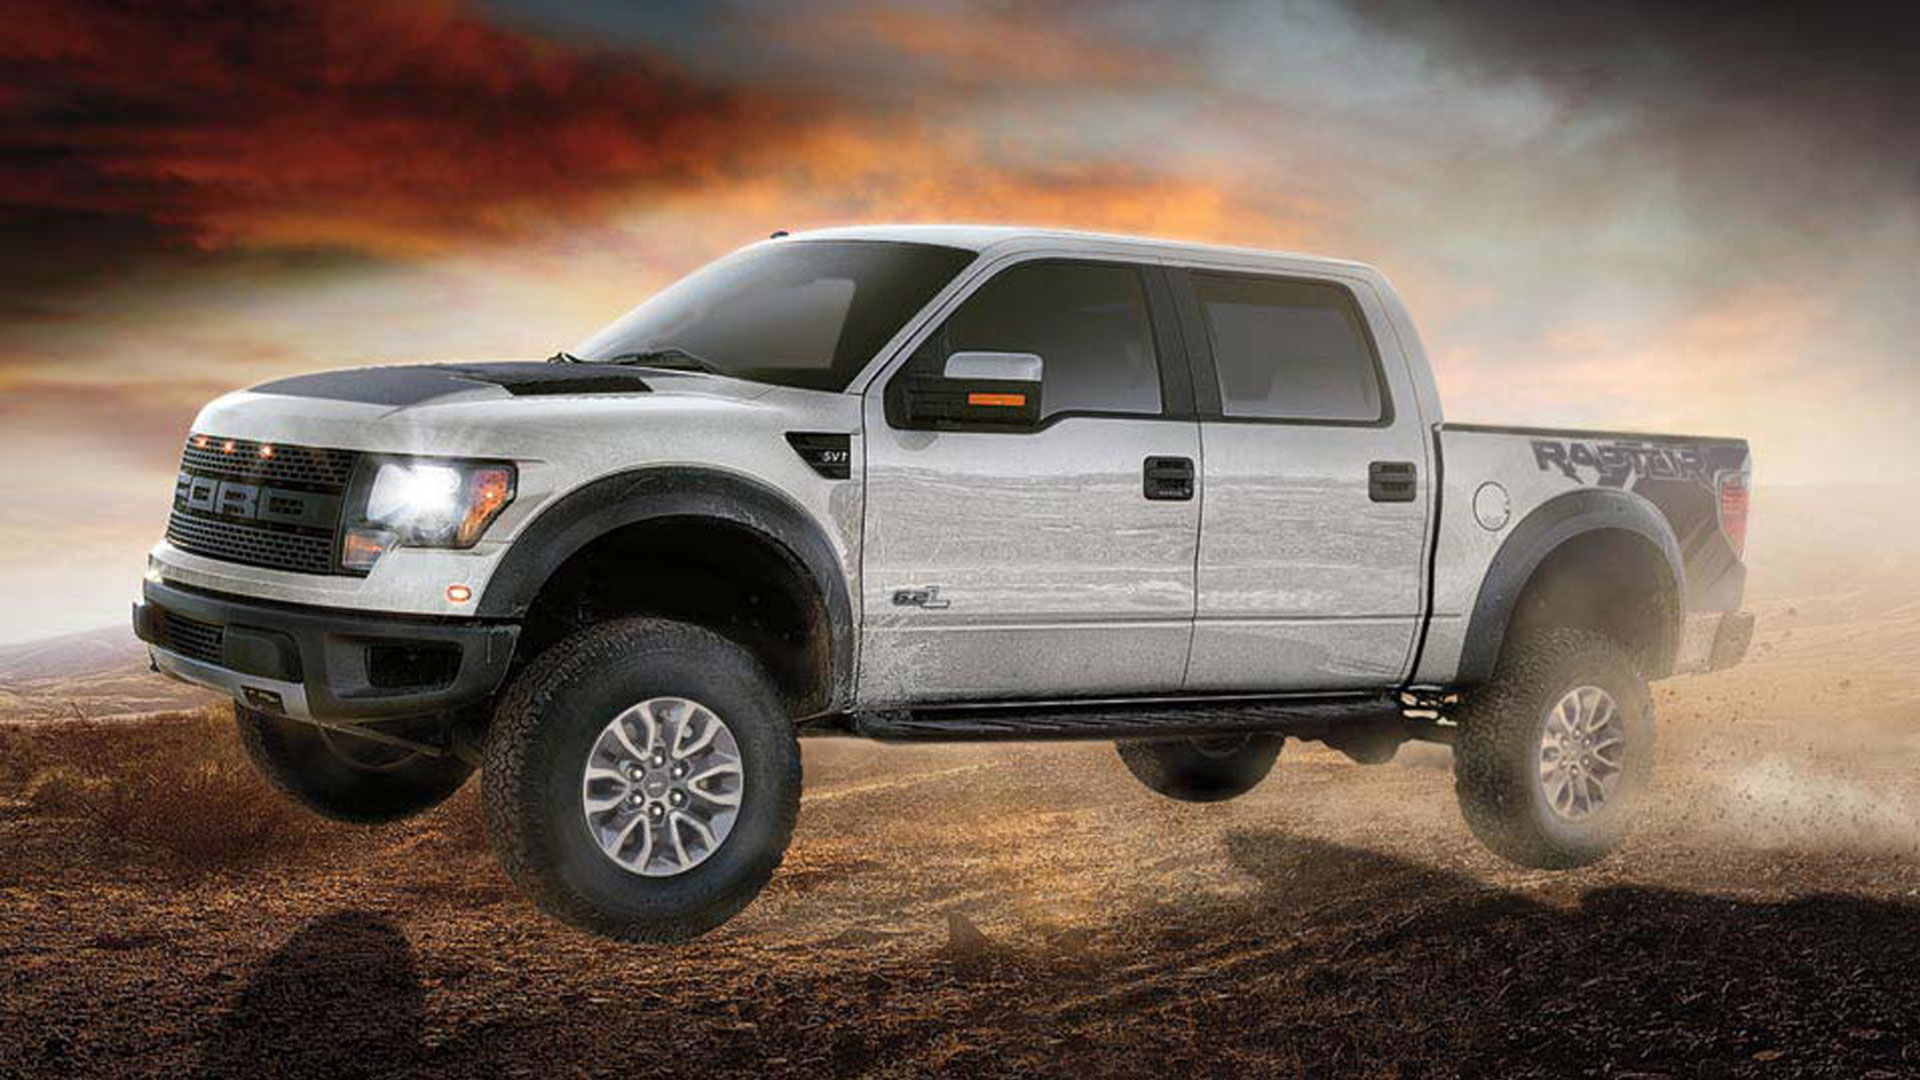 2013 ford raptor Wallpaper HD   Freak Wheel 1920x1080